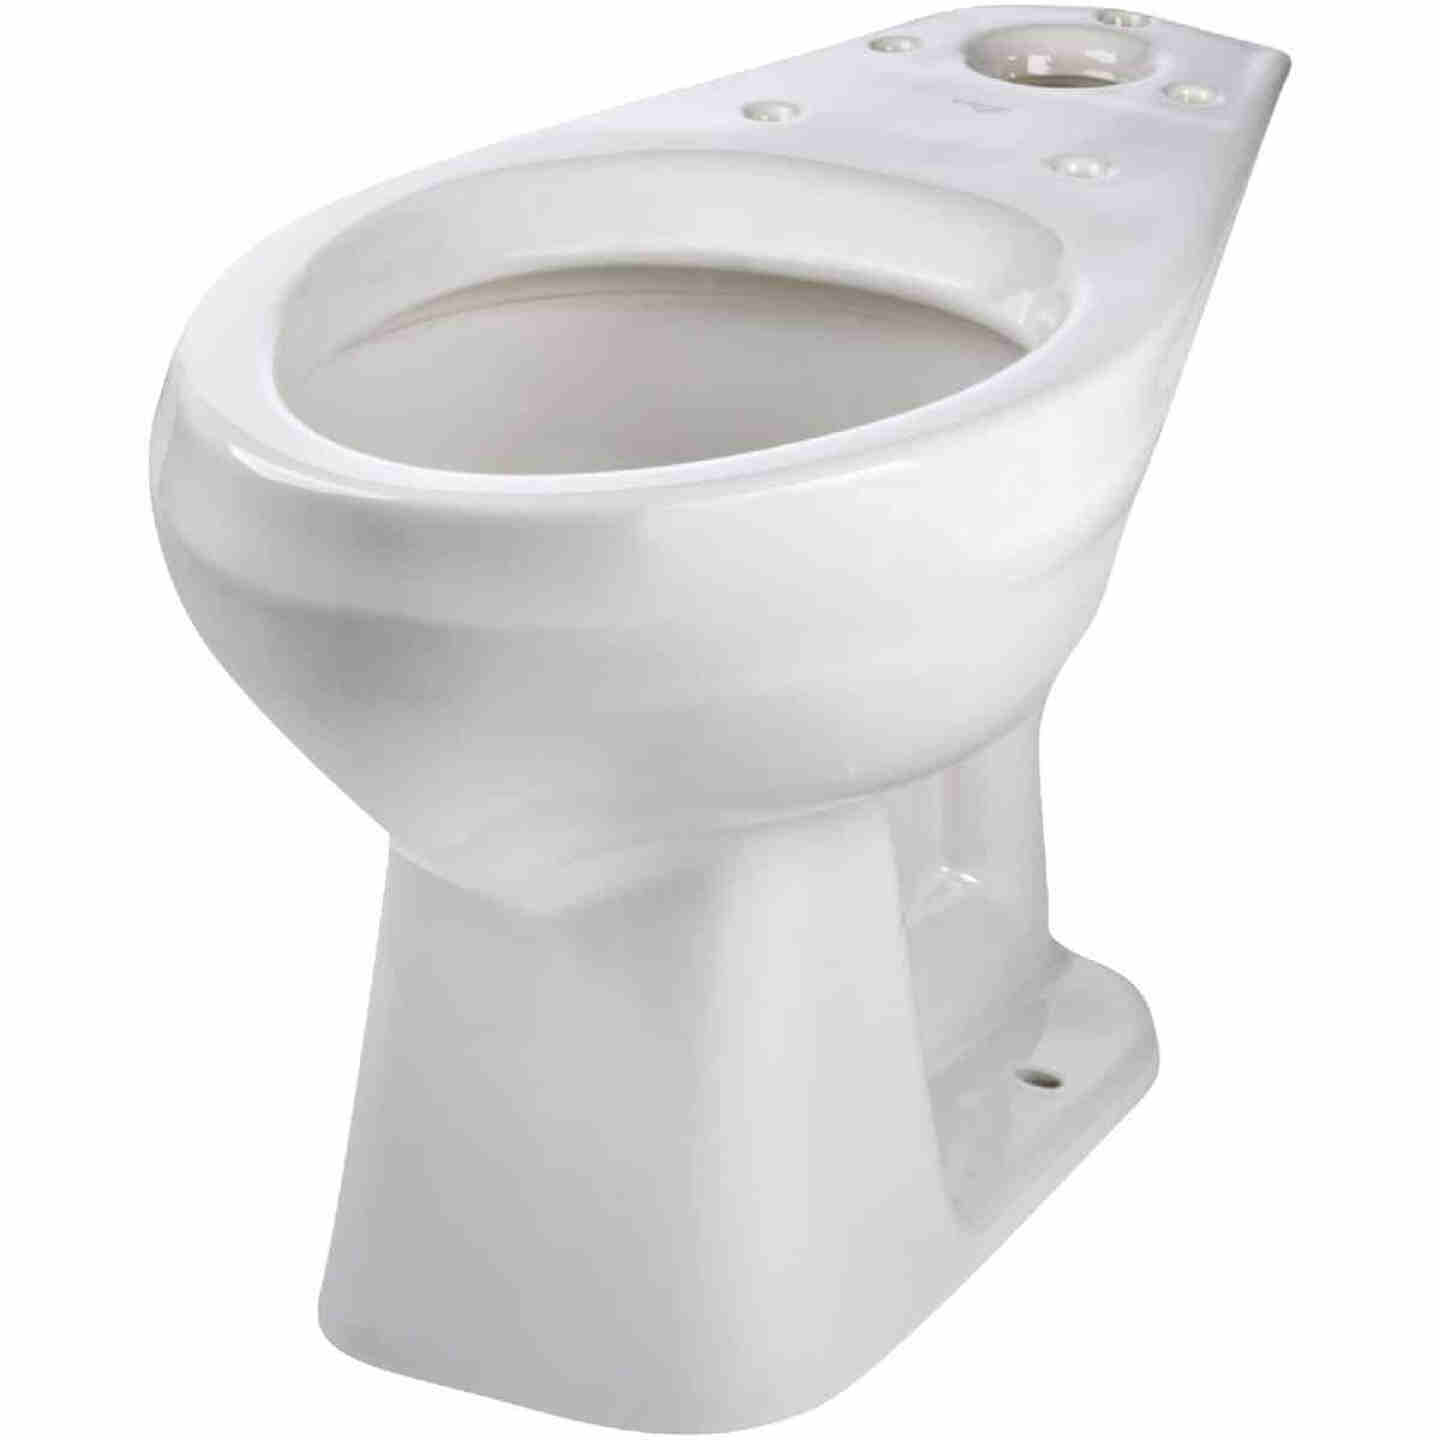 Mansfield Pro-Fit 3 SmartHeight White Elongated Bowl 1.6 GPF Complete Toilet Image 4